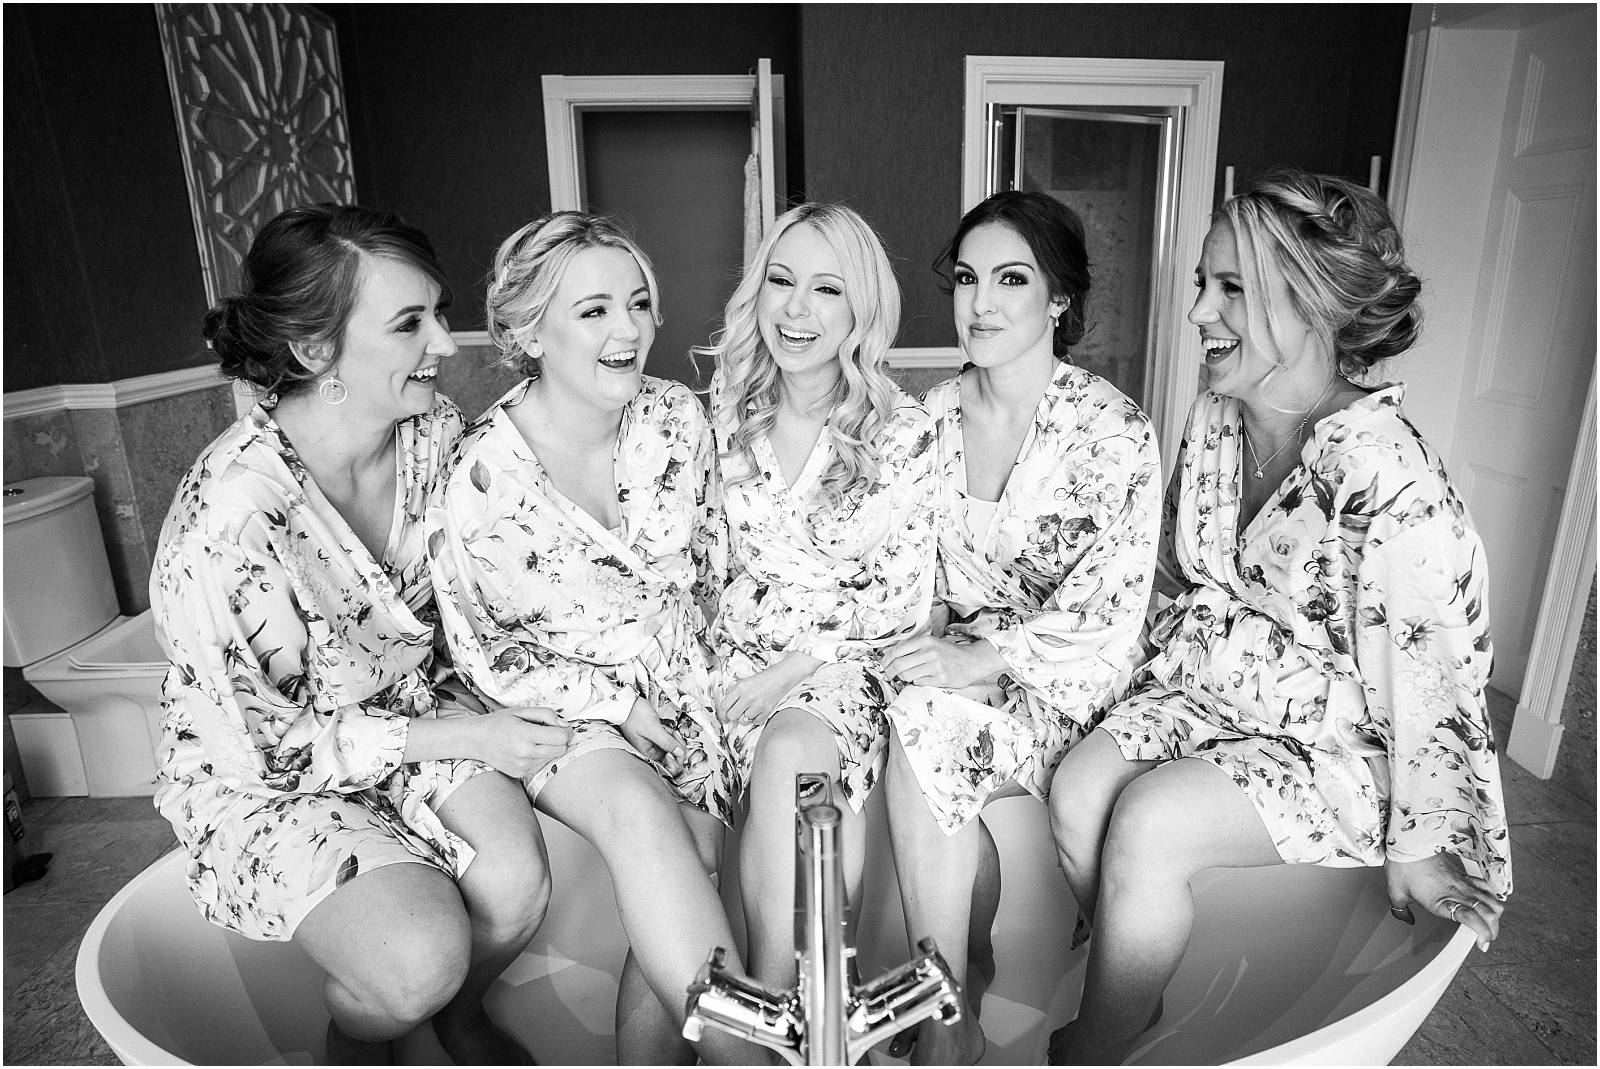 black and white photograph of bridesmaids sitting in bath together